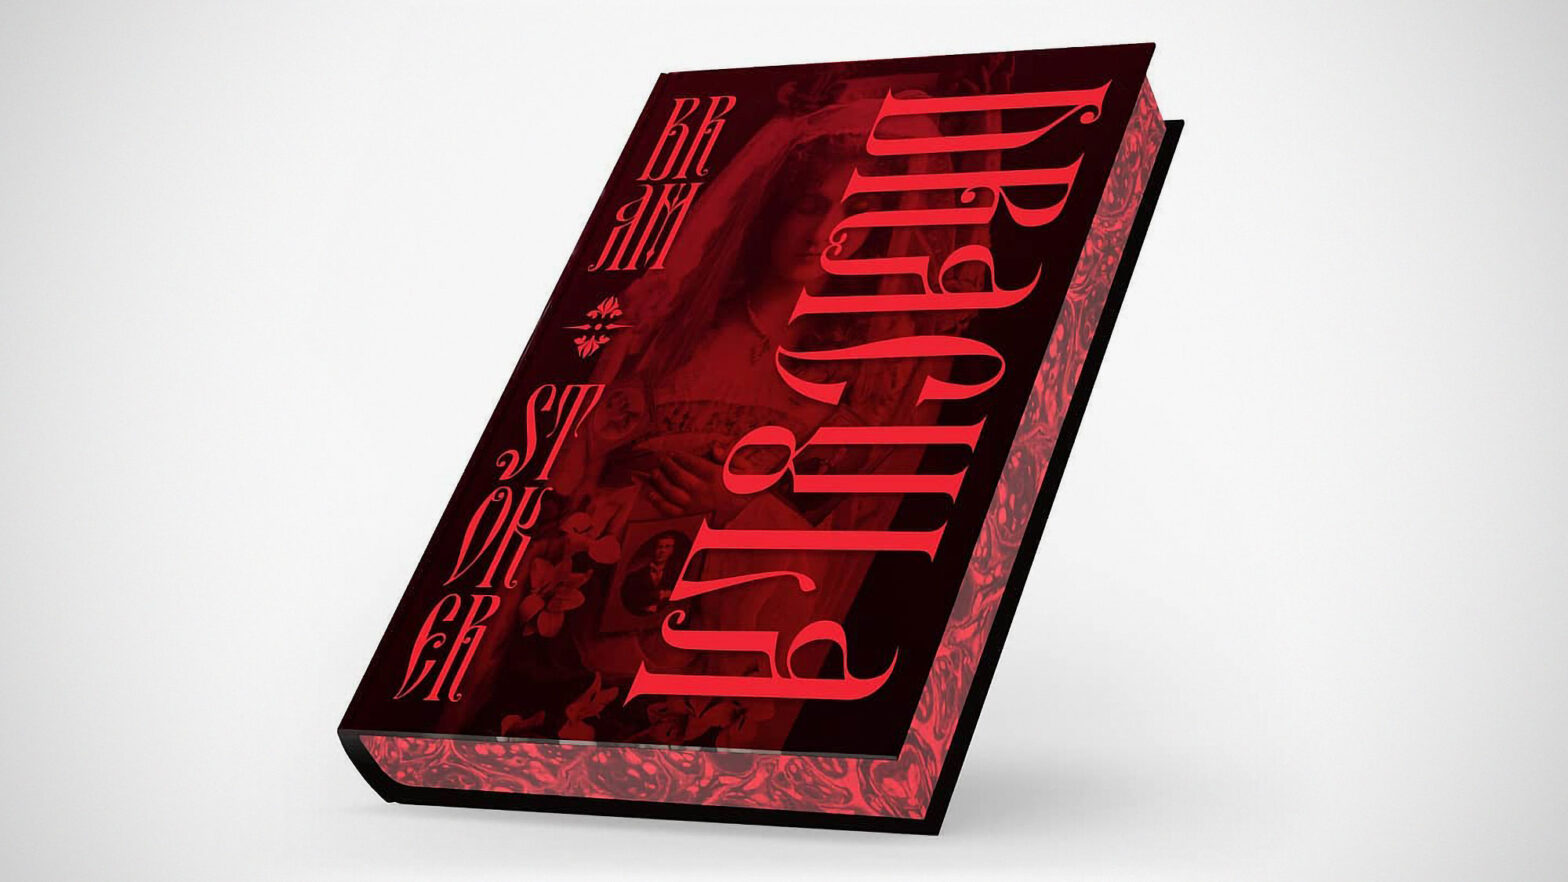 Dracula: The Evidence Hardcover Edition by Beehive Books